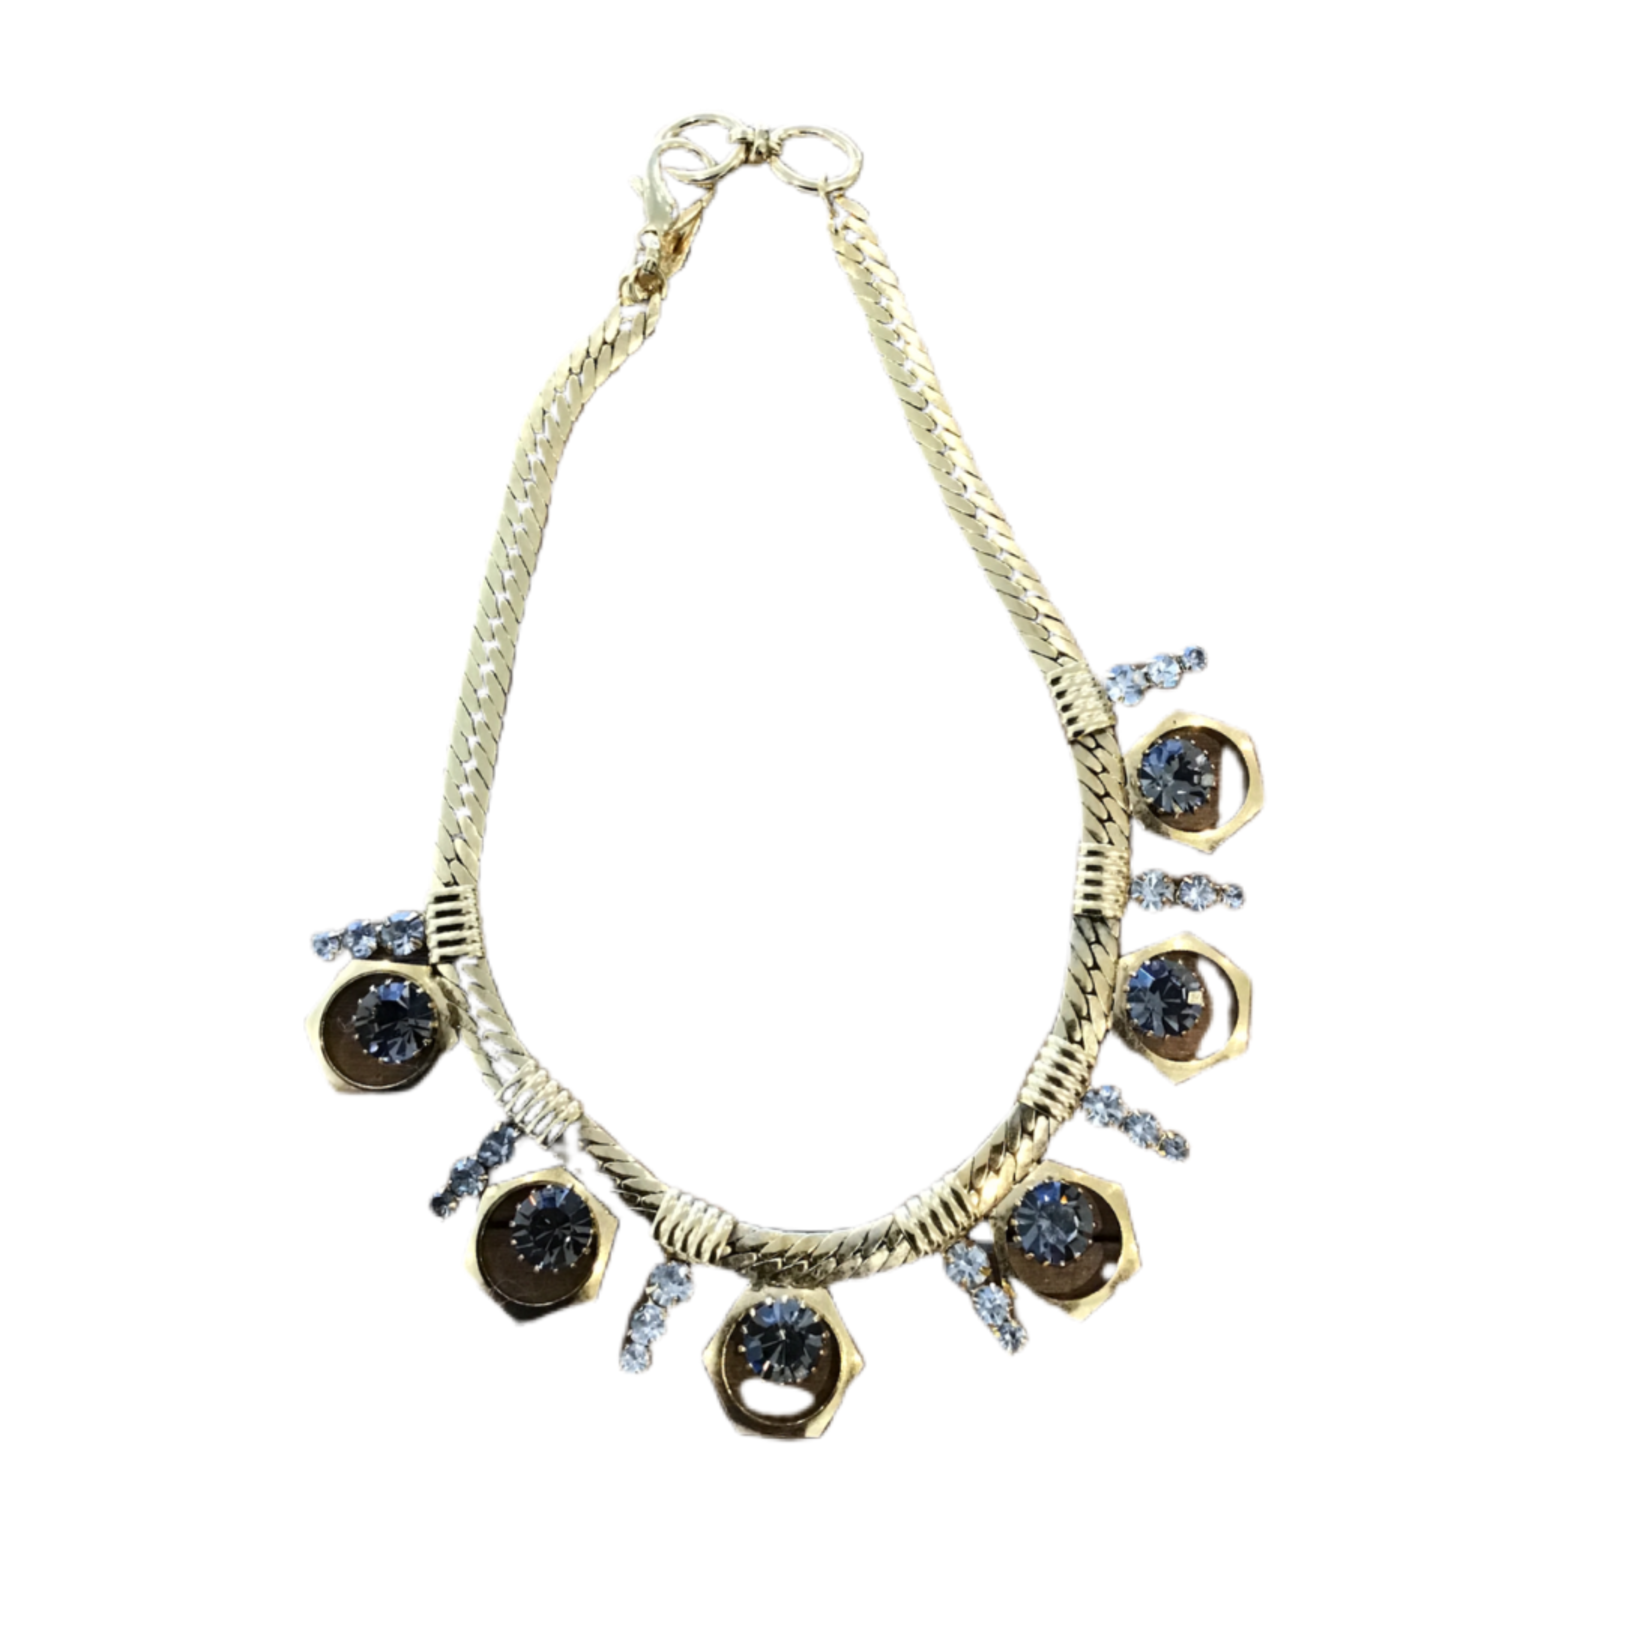 Nicole Romano Antiqued Gold Crystal And Bolt Detailed Necklace